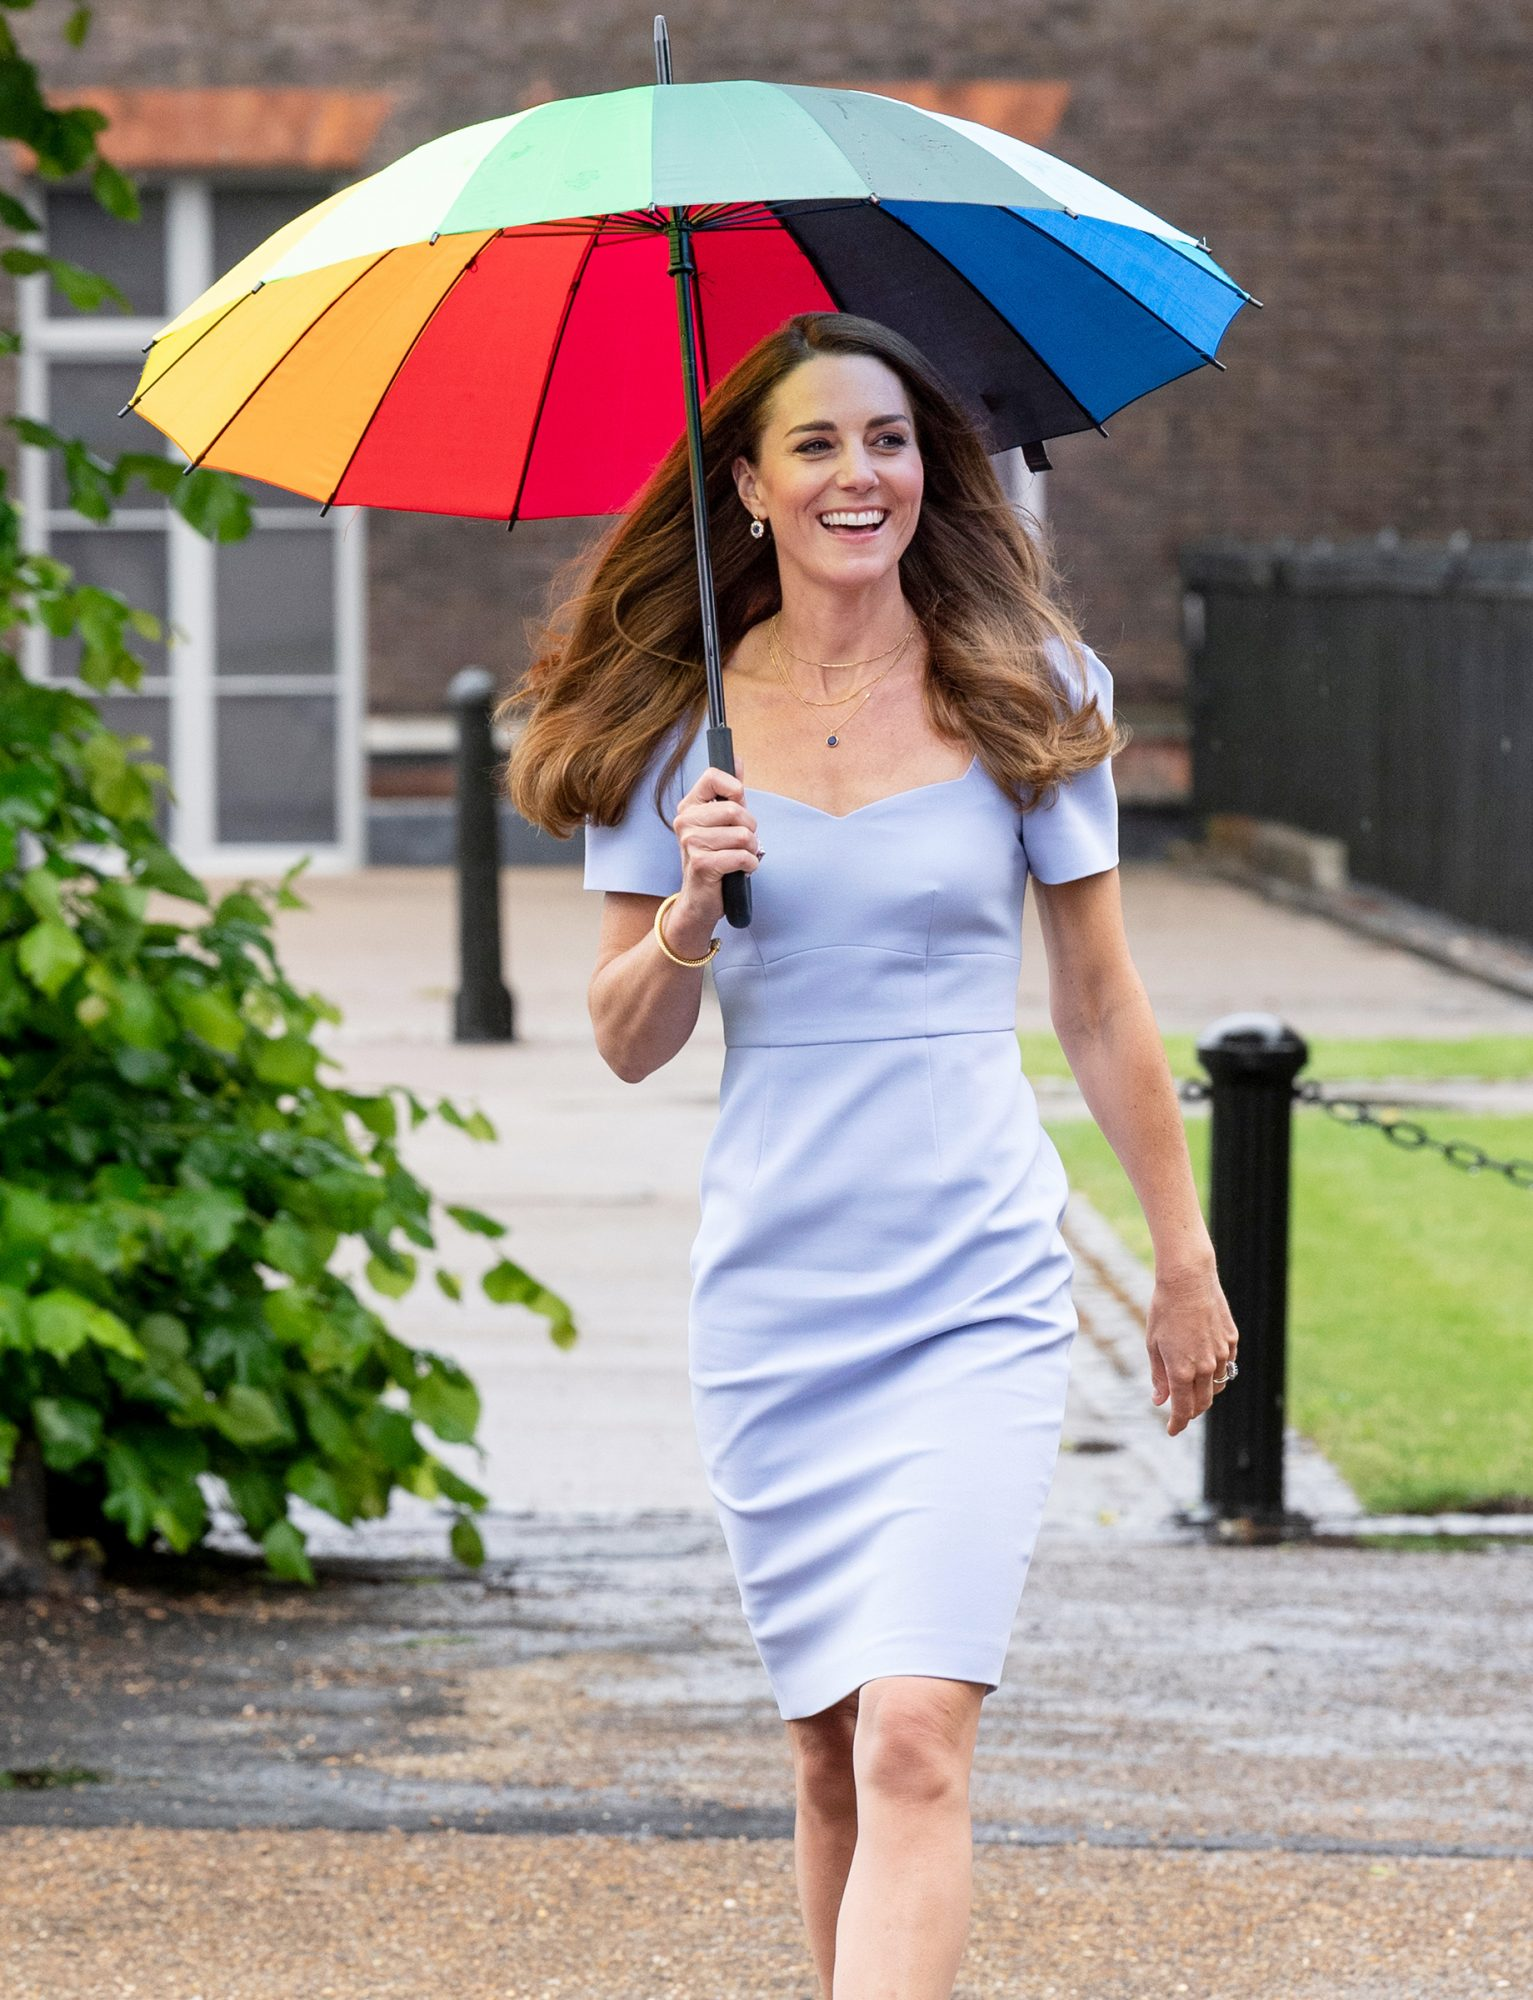 Catherine, Duchess of Cambridge arrives at a reception to meet parents of users of a Centre for Early Childhood in the grounds of Kensington Palace on June 18, 2021 in London, England. The Duchess of Cambridge has launched her own Centre for Early Childhood, to raise awareness of the importance of early years